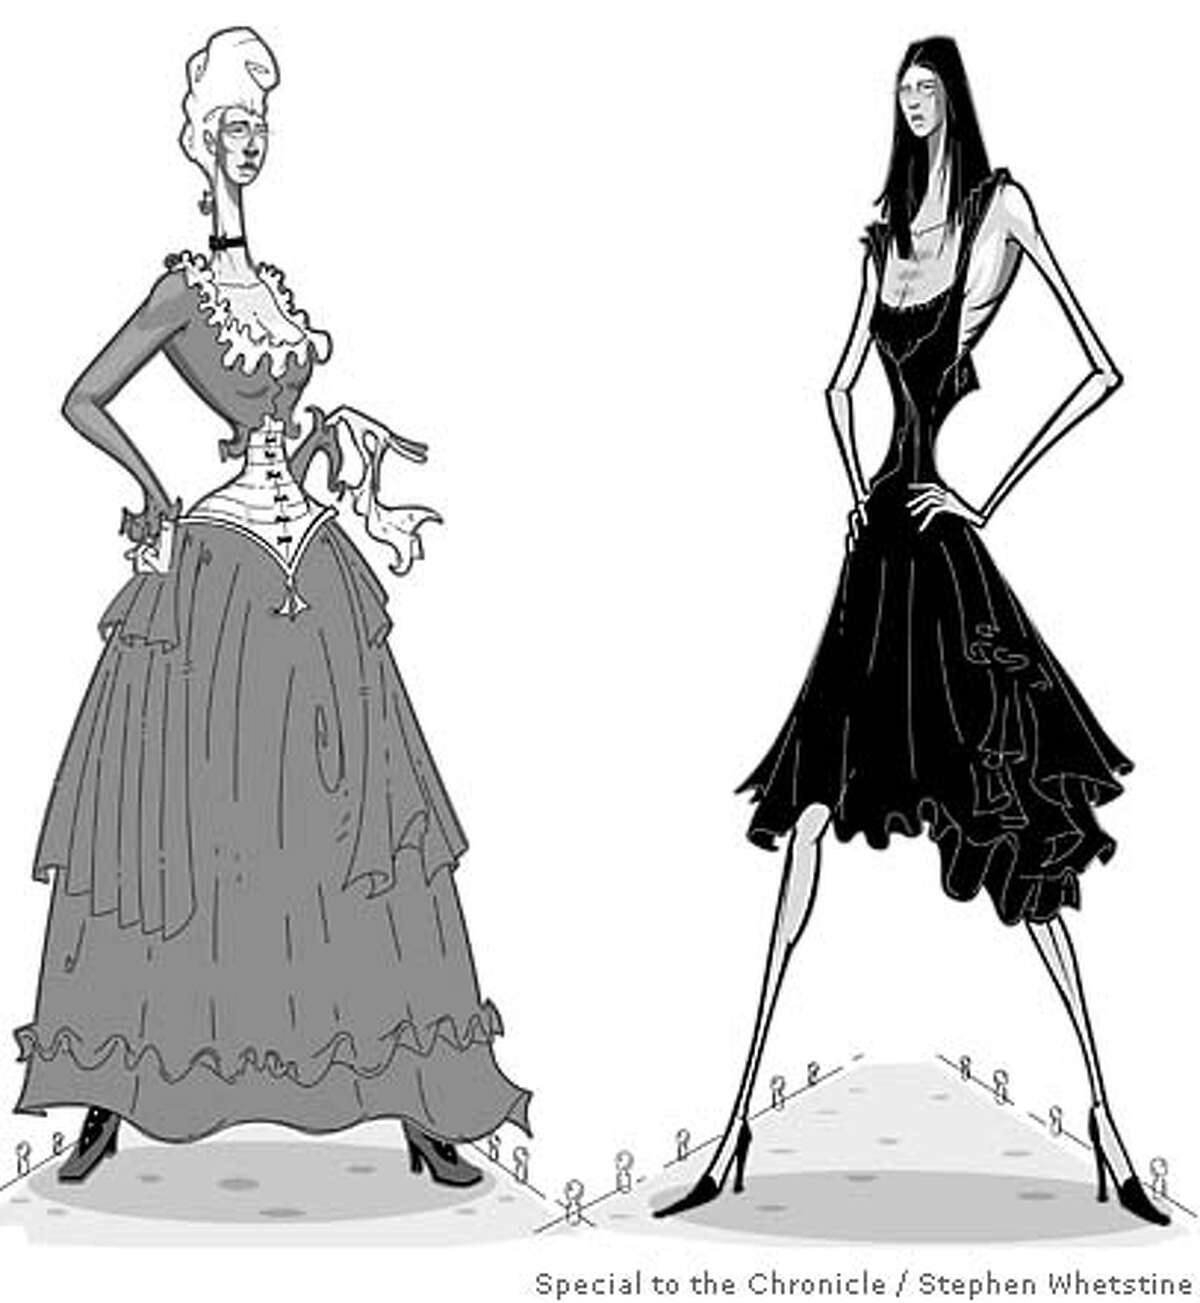 A Century of Killer Fashion. Illustration by Stephen Whetstine, special to the Chronicle